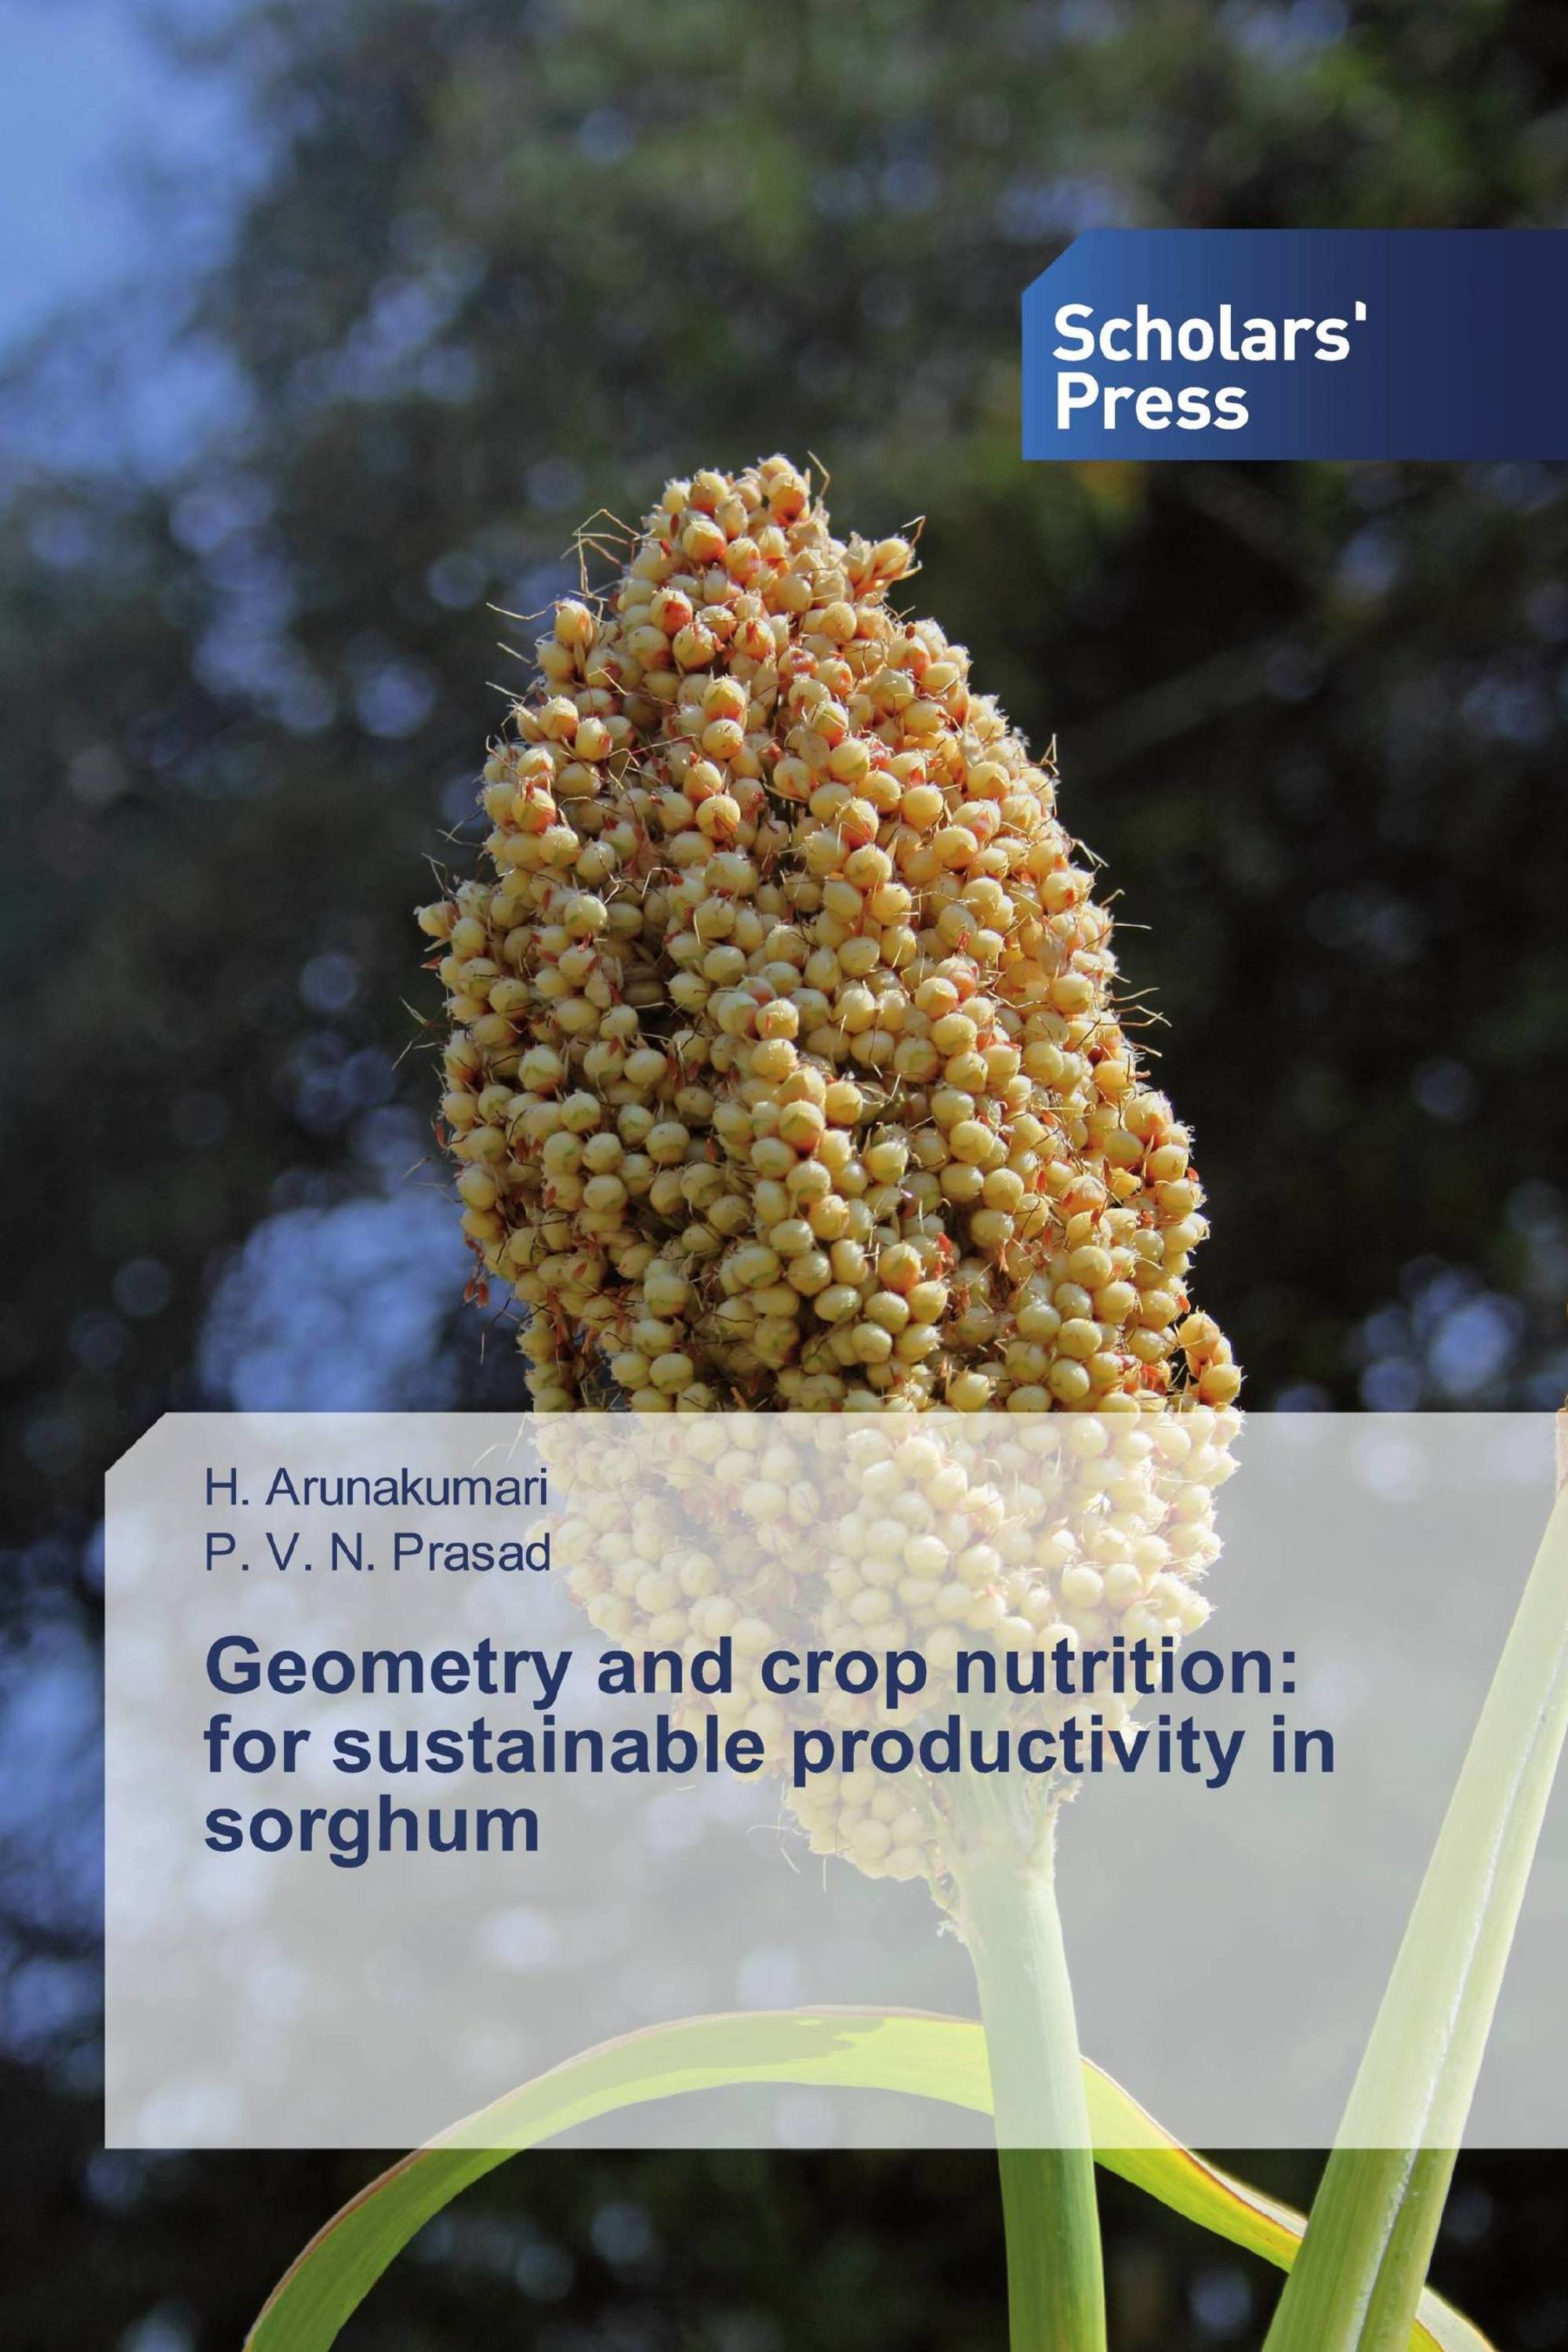 Geometry and crop nutrition: for sustainable productivity in sorghum